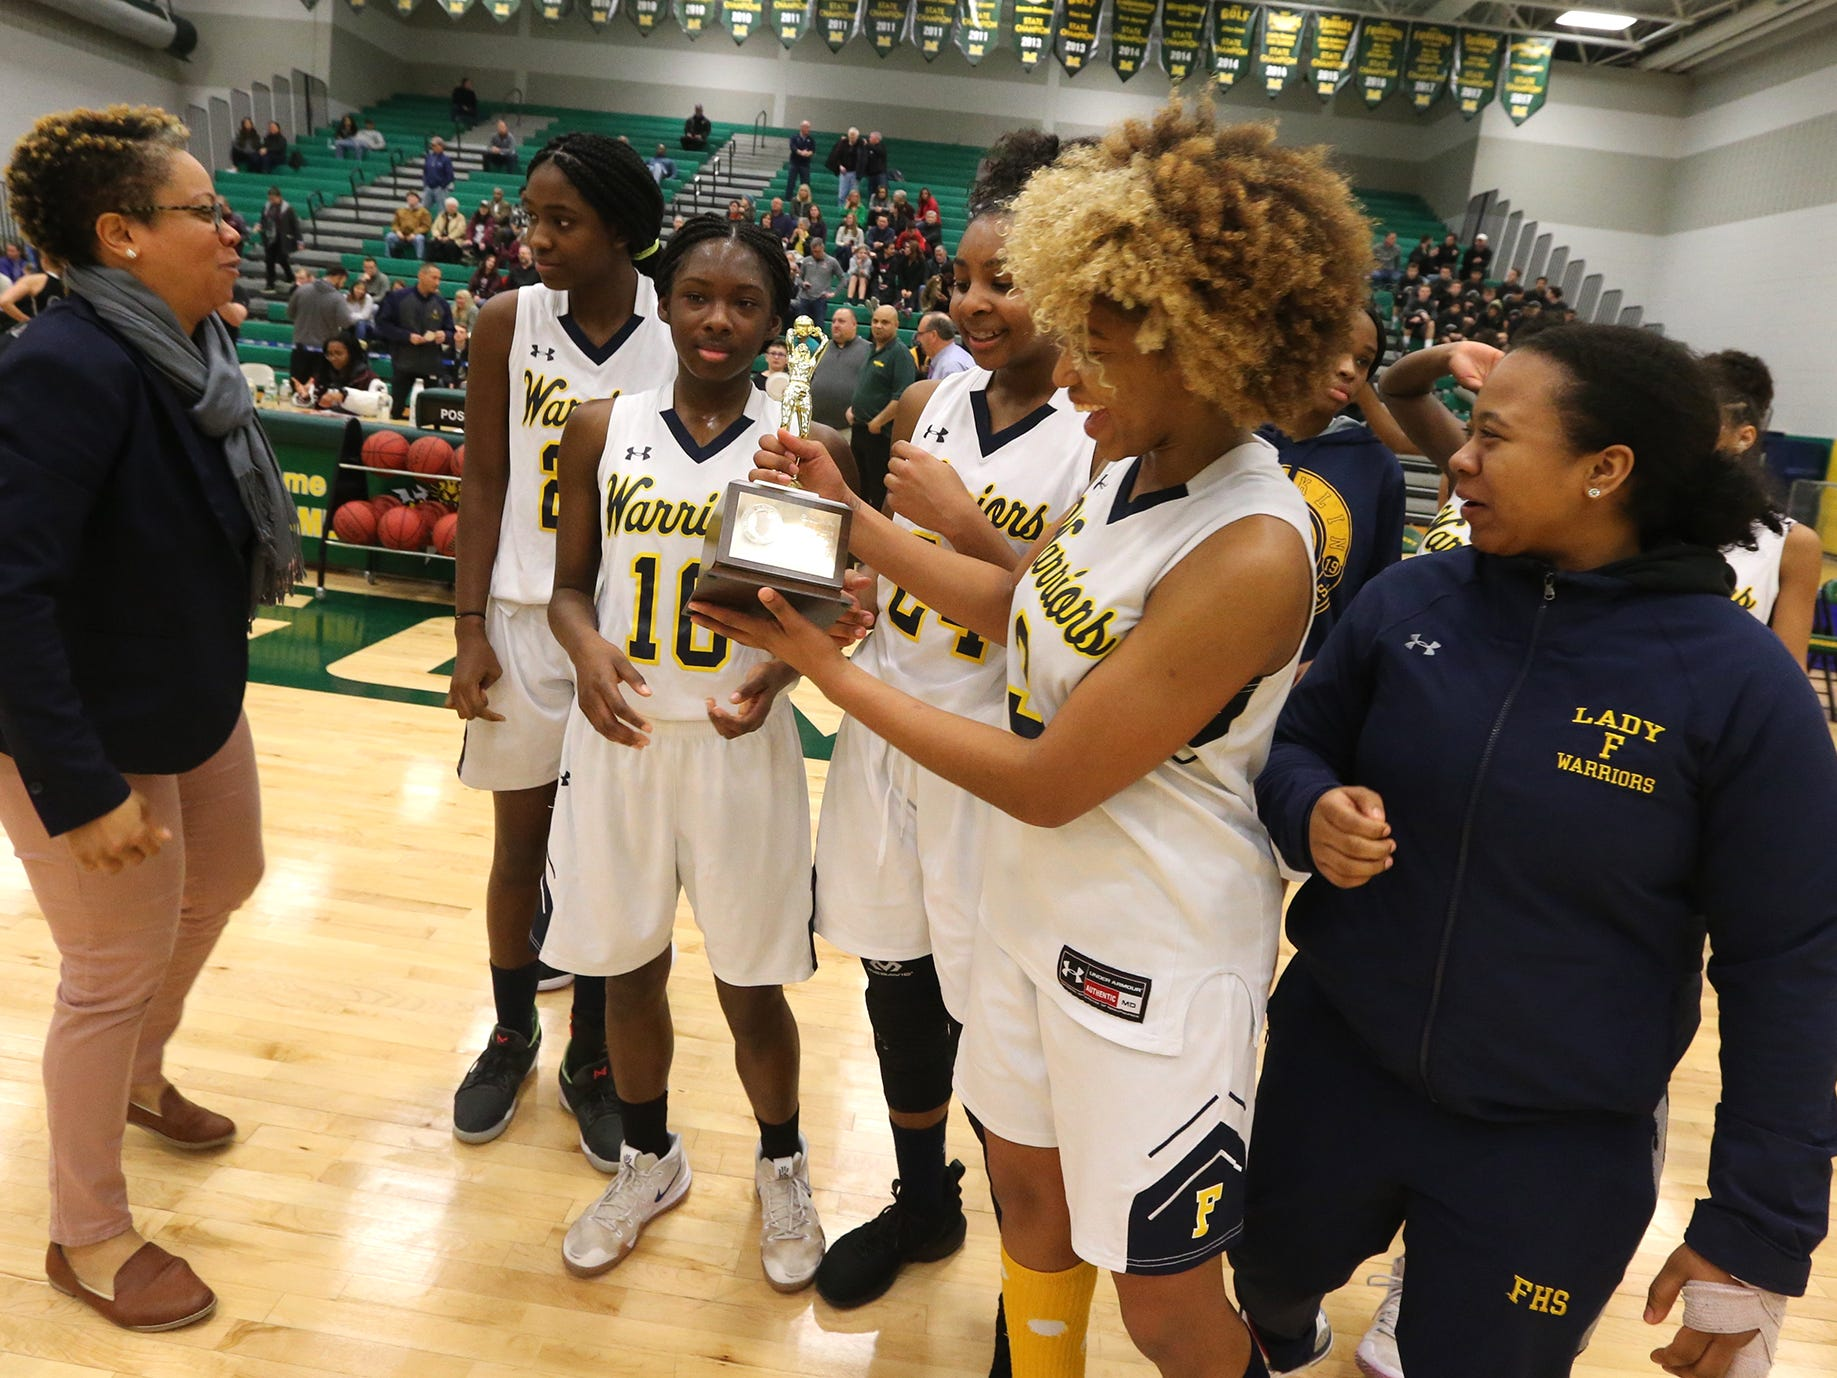 The top-seeded Franklin girls basketball team won its second-straight Somerset County Tournament title 63-49 over No. 2 Rutgers Prep on Saturday, Feb. 23, 2019.